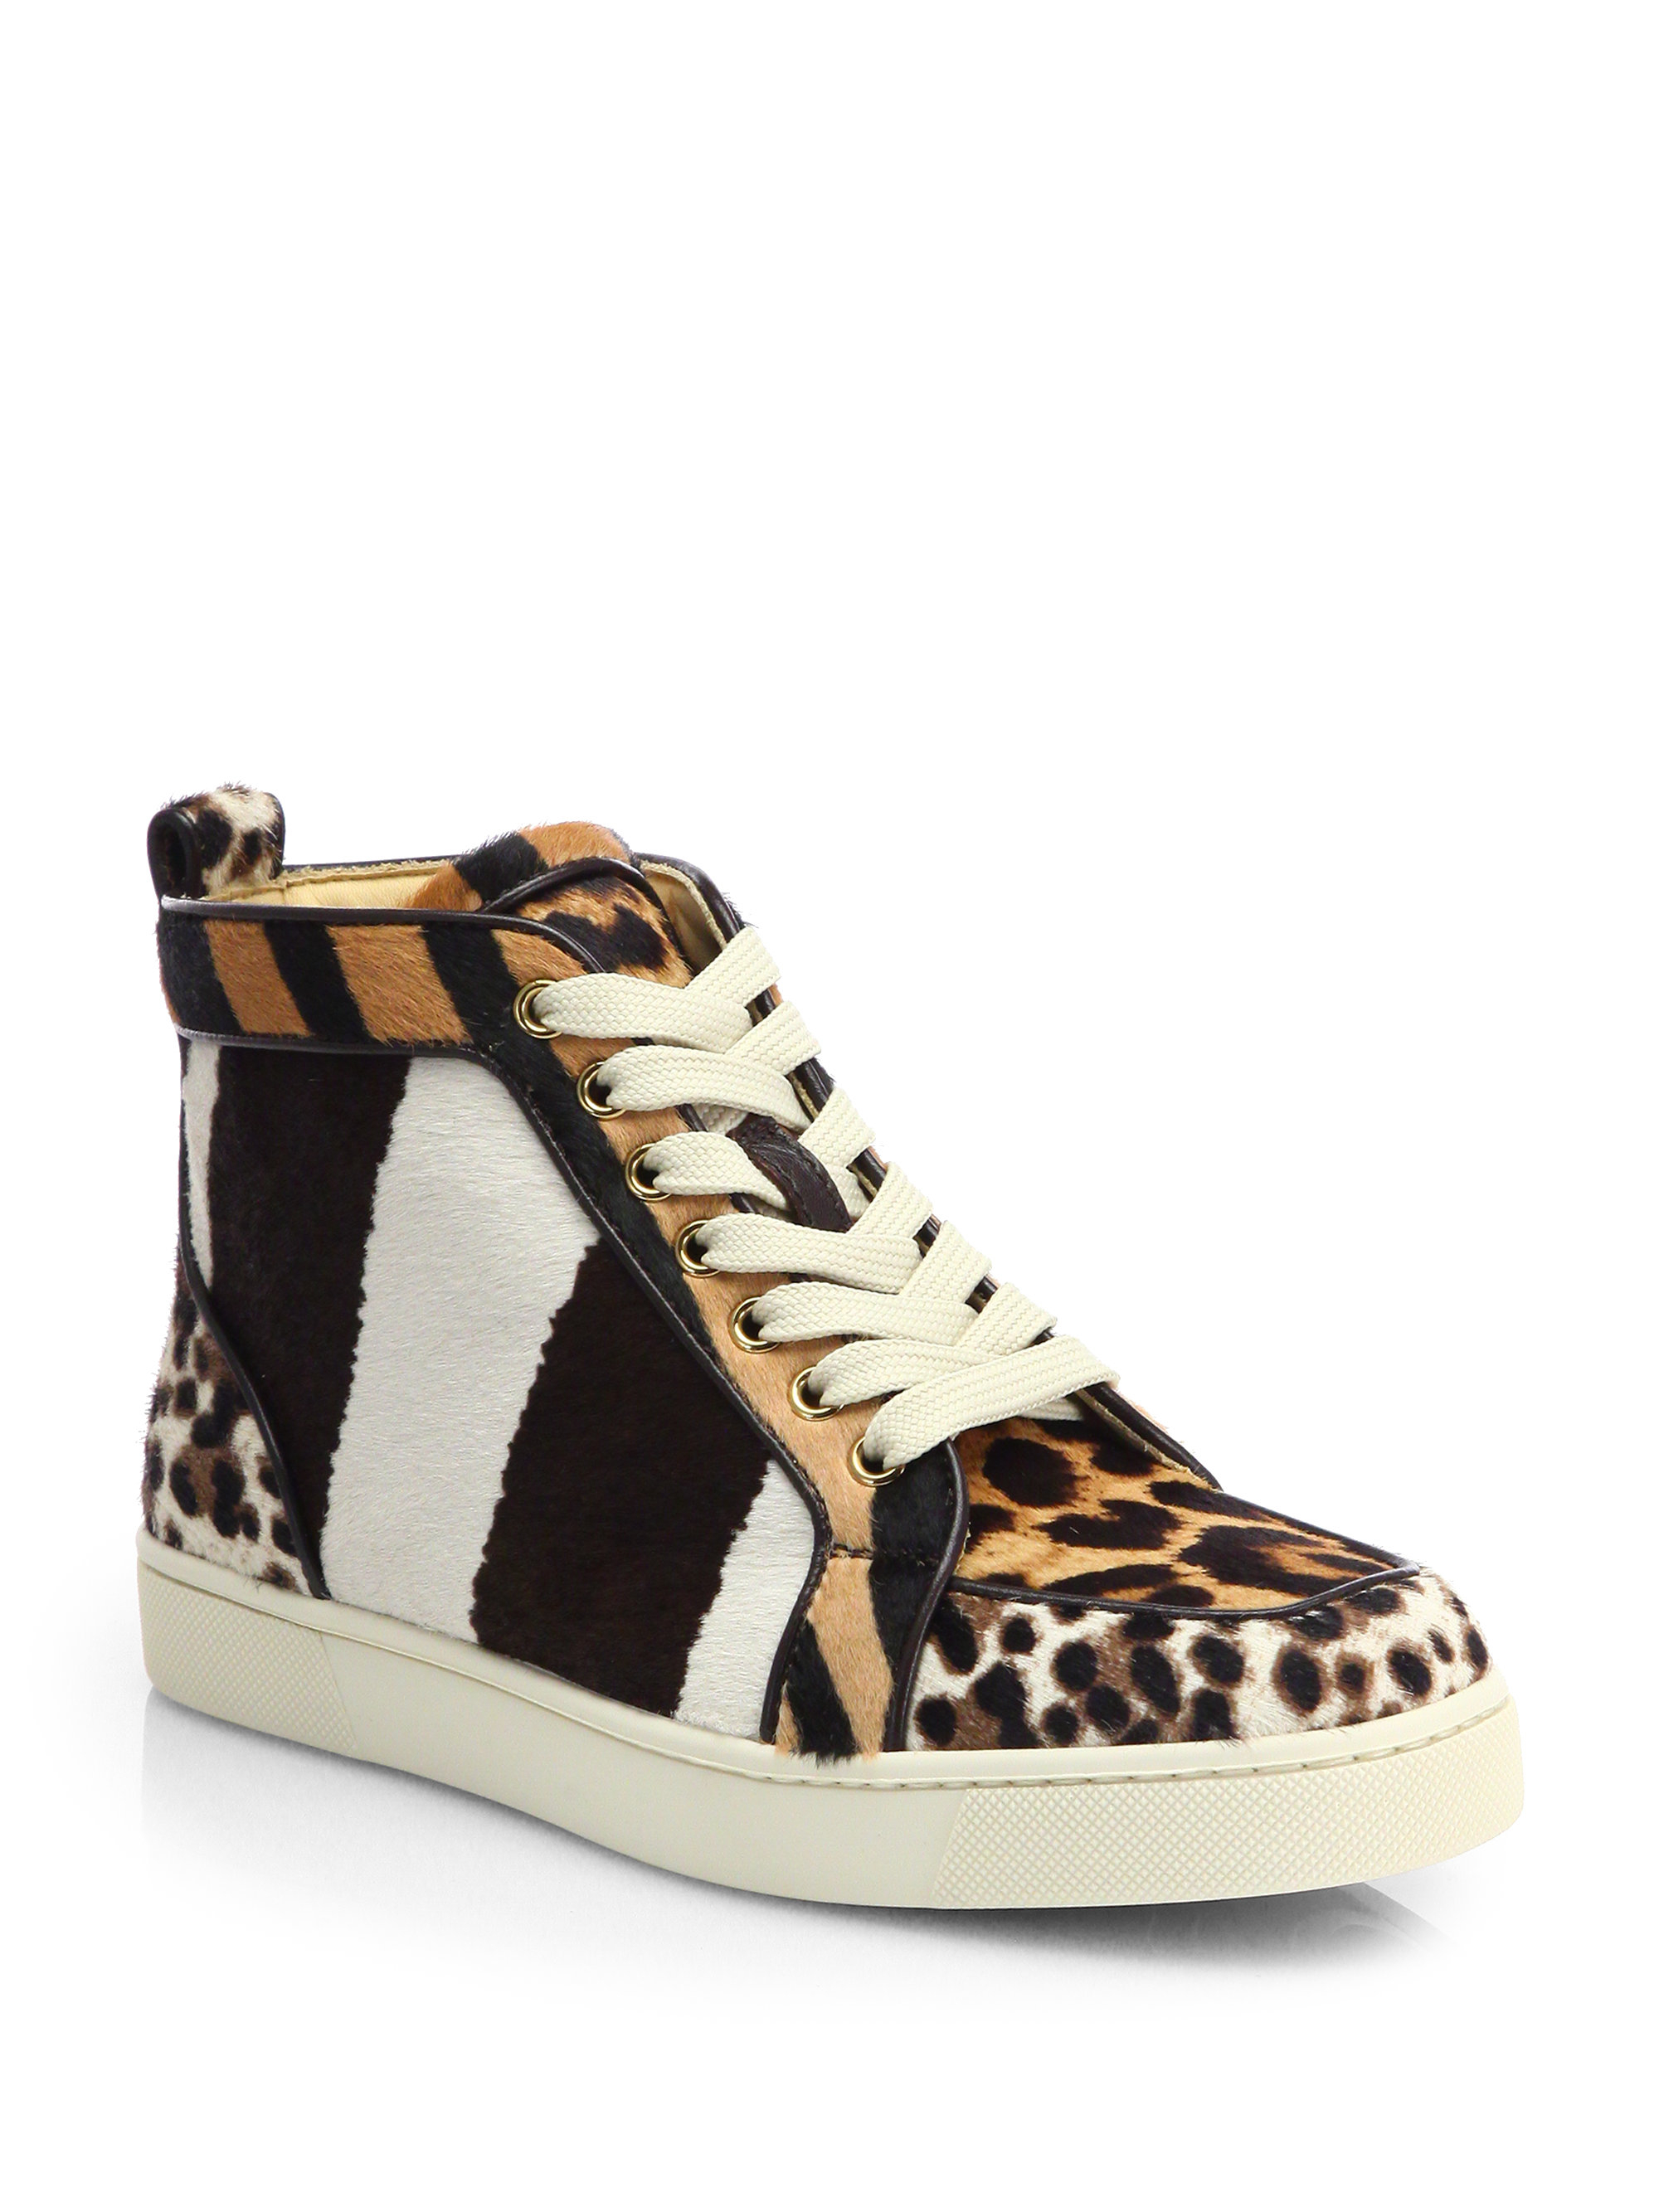 1a3353f44292 Lyst - Christian Louboutin Rantus Orlato Mixed Animal-Print Calf ...